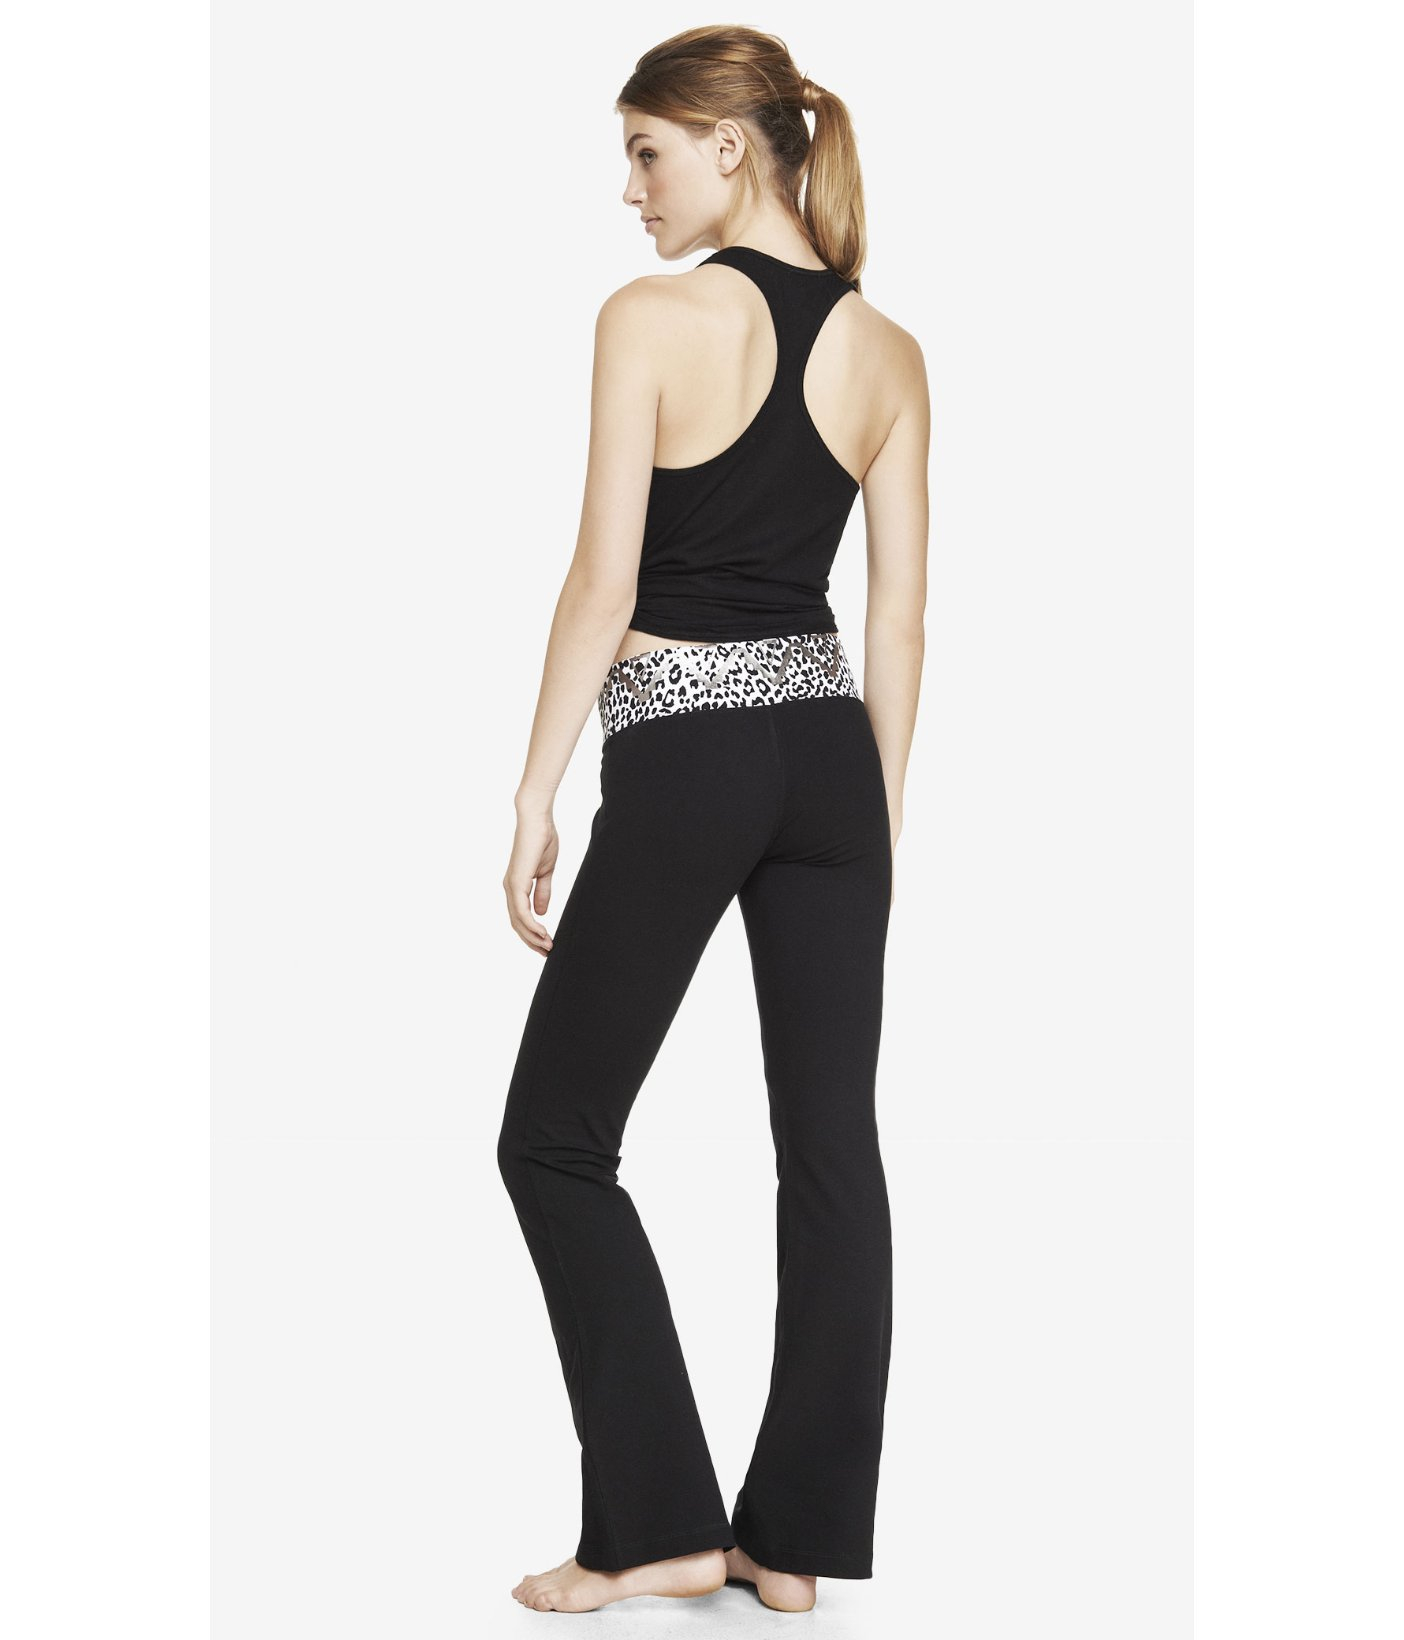 fc36f8485e8a0 Express Leopard Aztec Wide Band Flare Yoga Pant in Black - Lyst